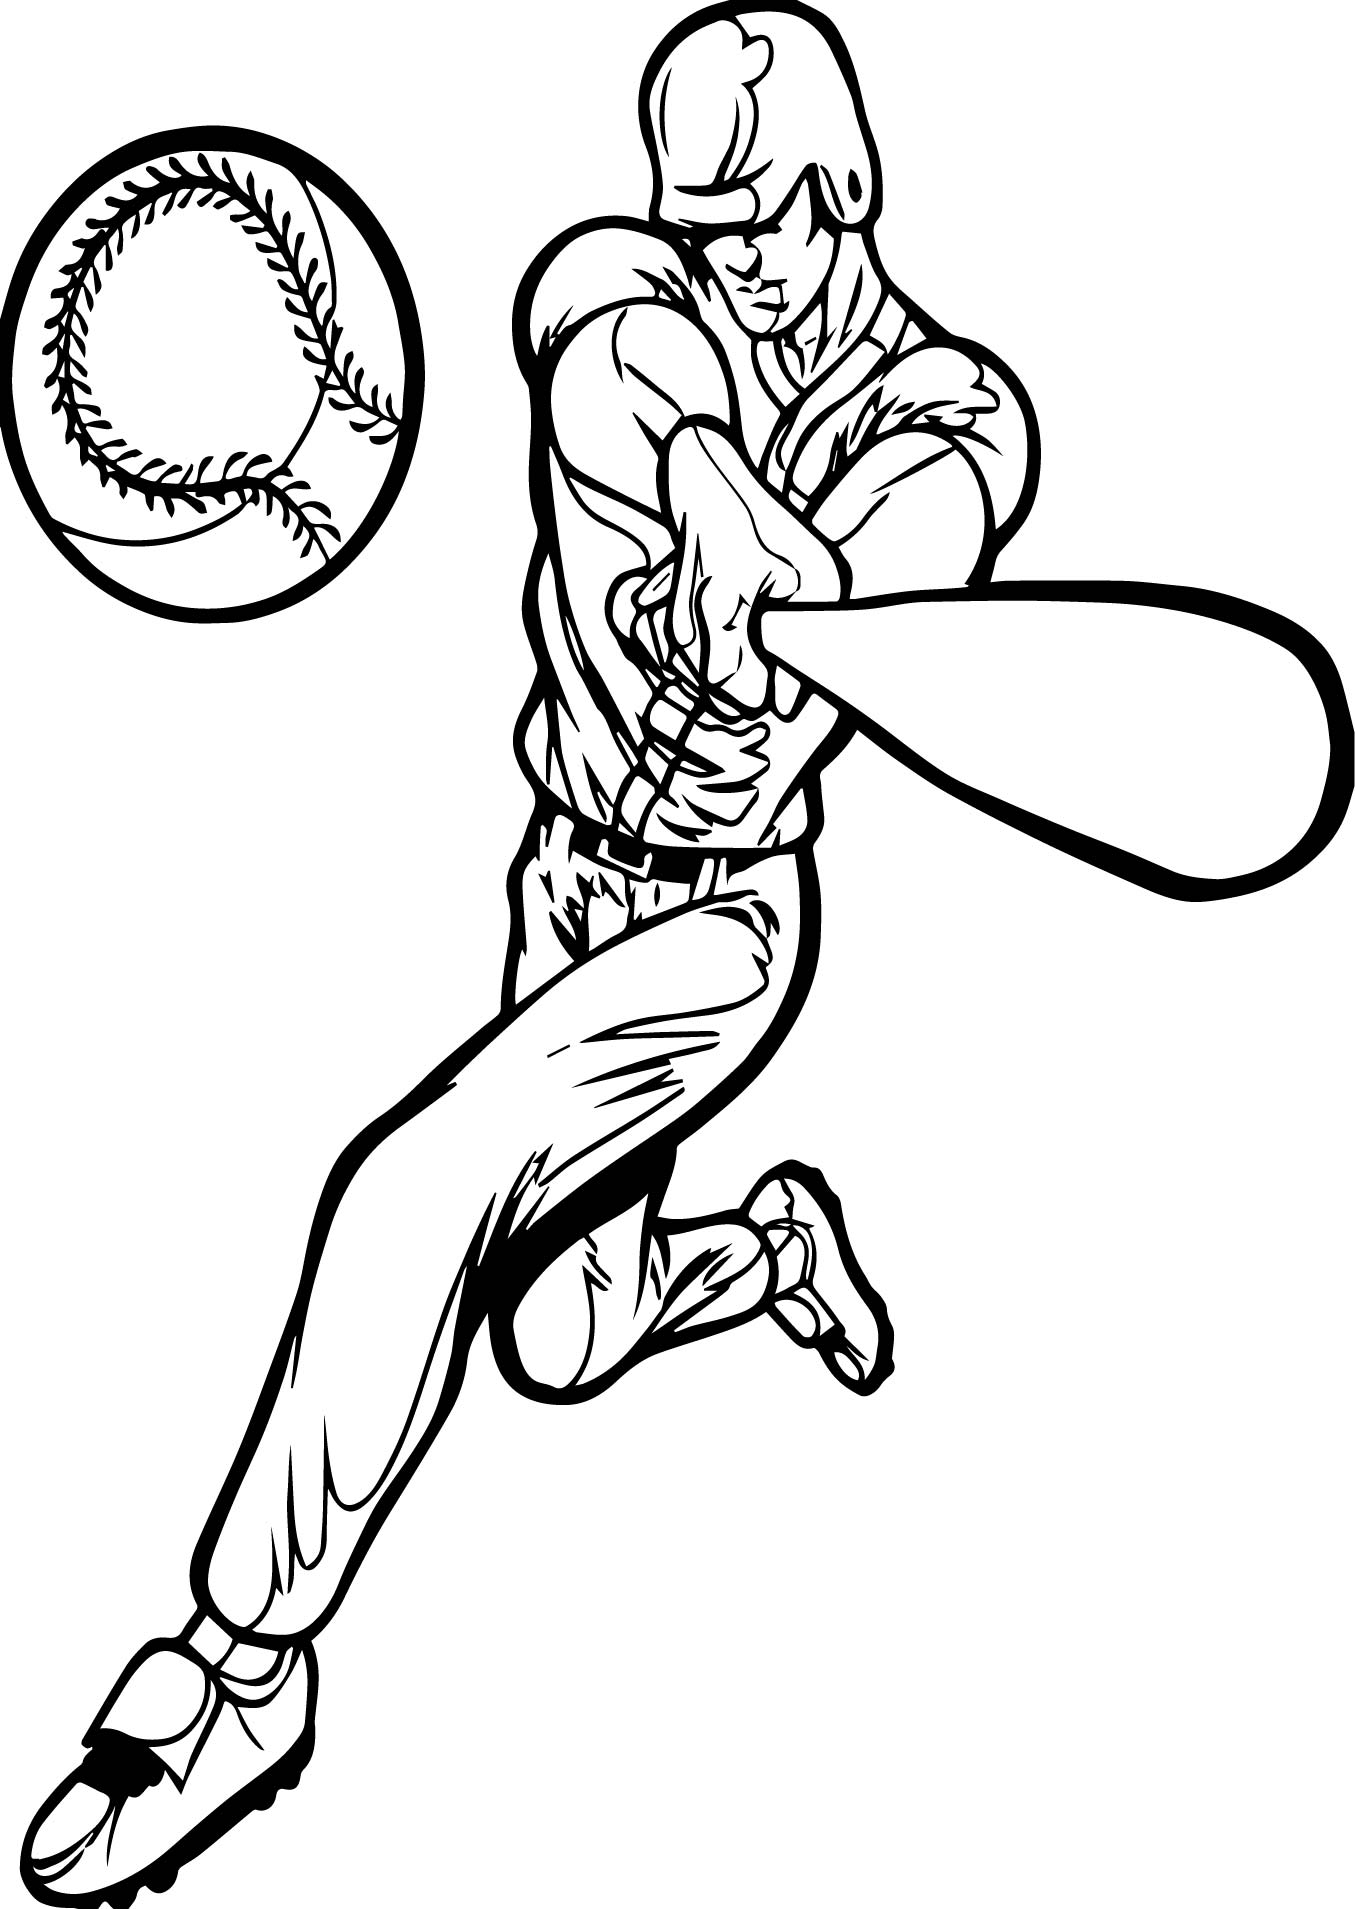 perfect playing baseball man coloring page wecoloringpage